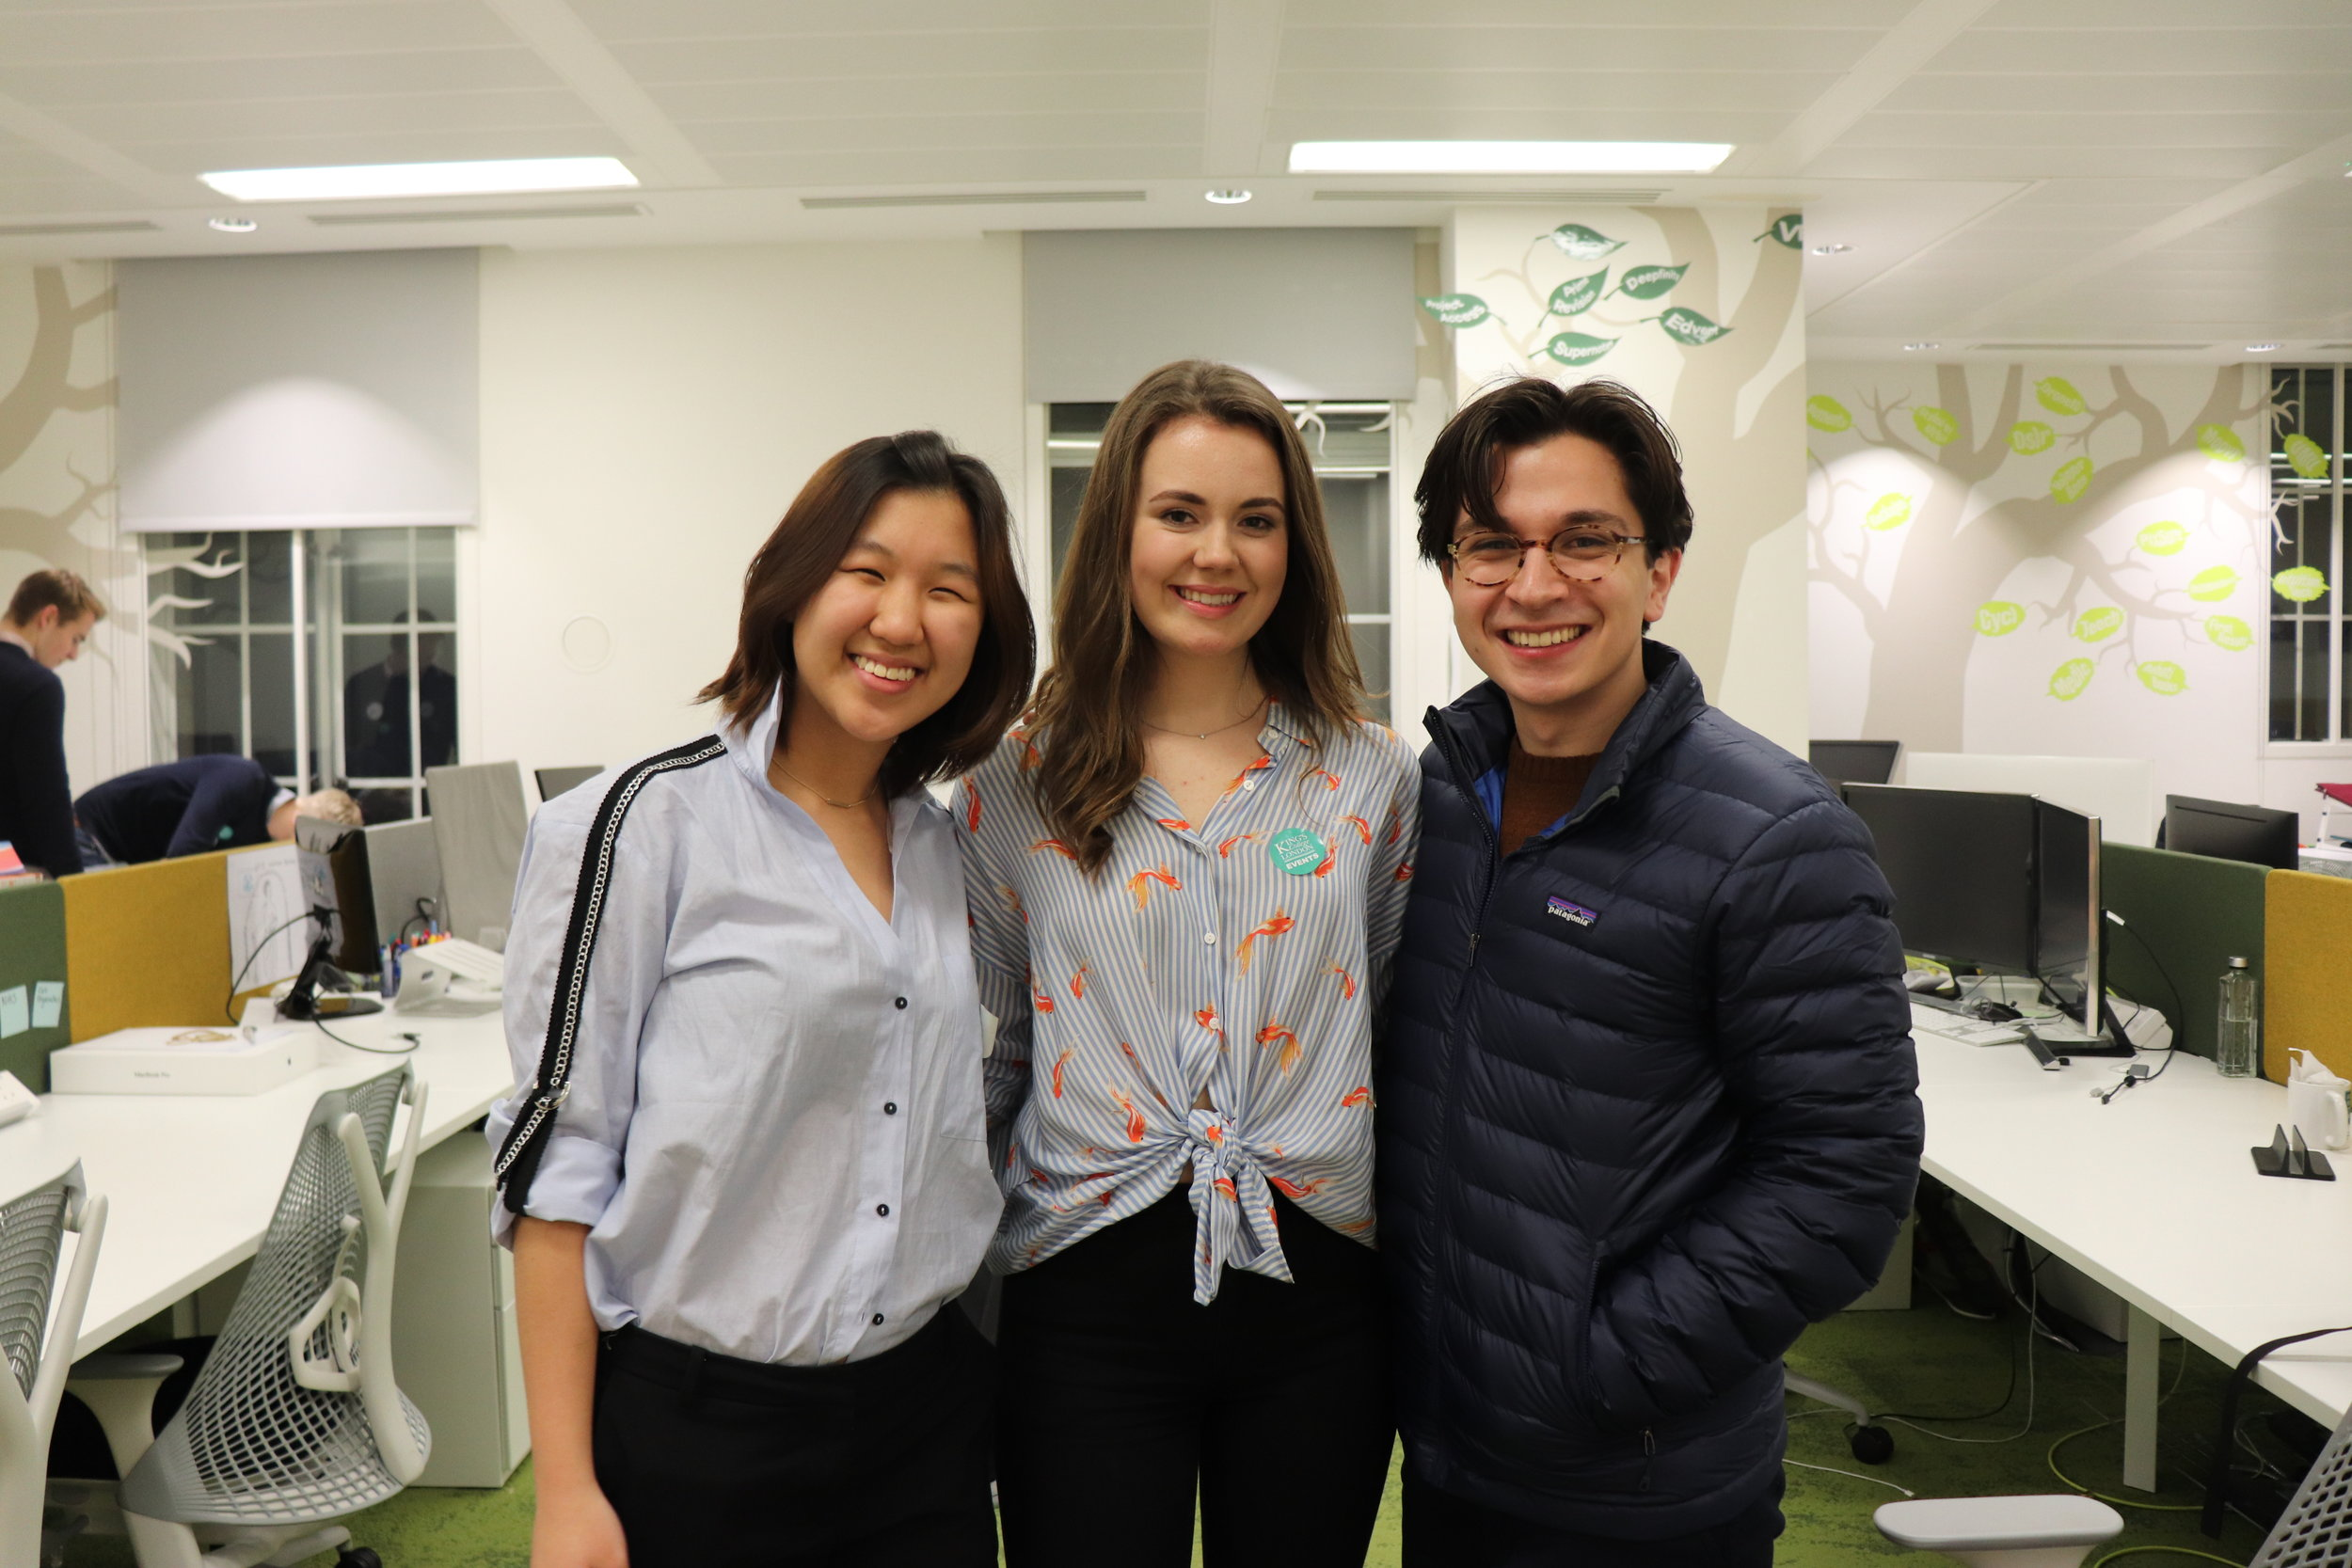 With some of the Marketing Team members! Left to right: me, Catriona (Director of Marketing), Joe (Head of Marketing Logistics)